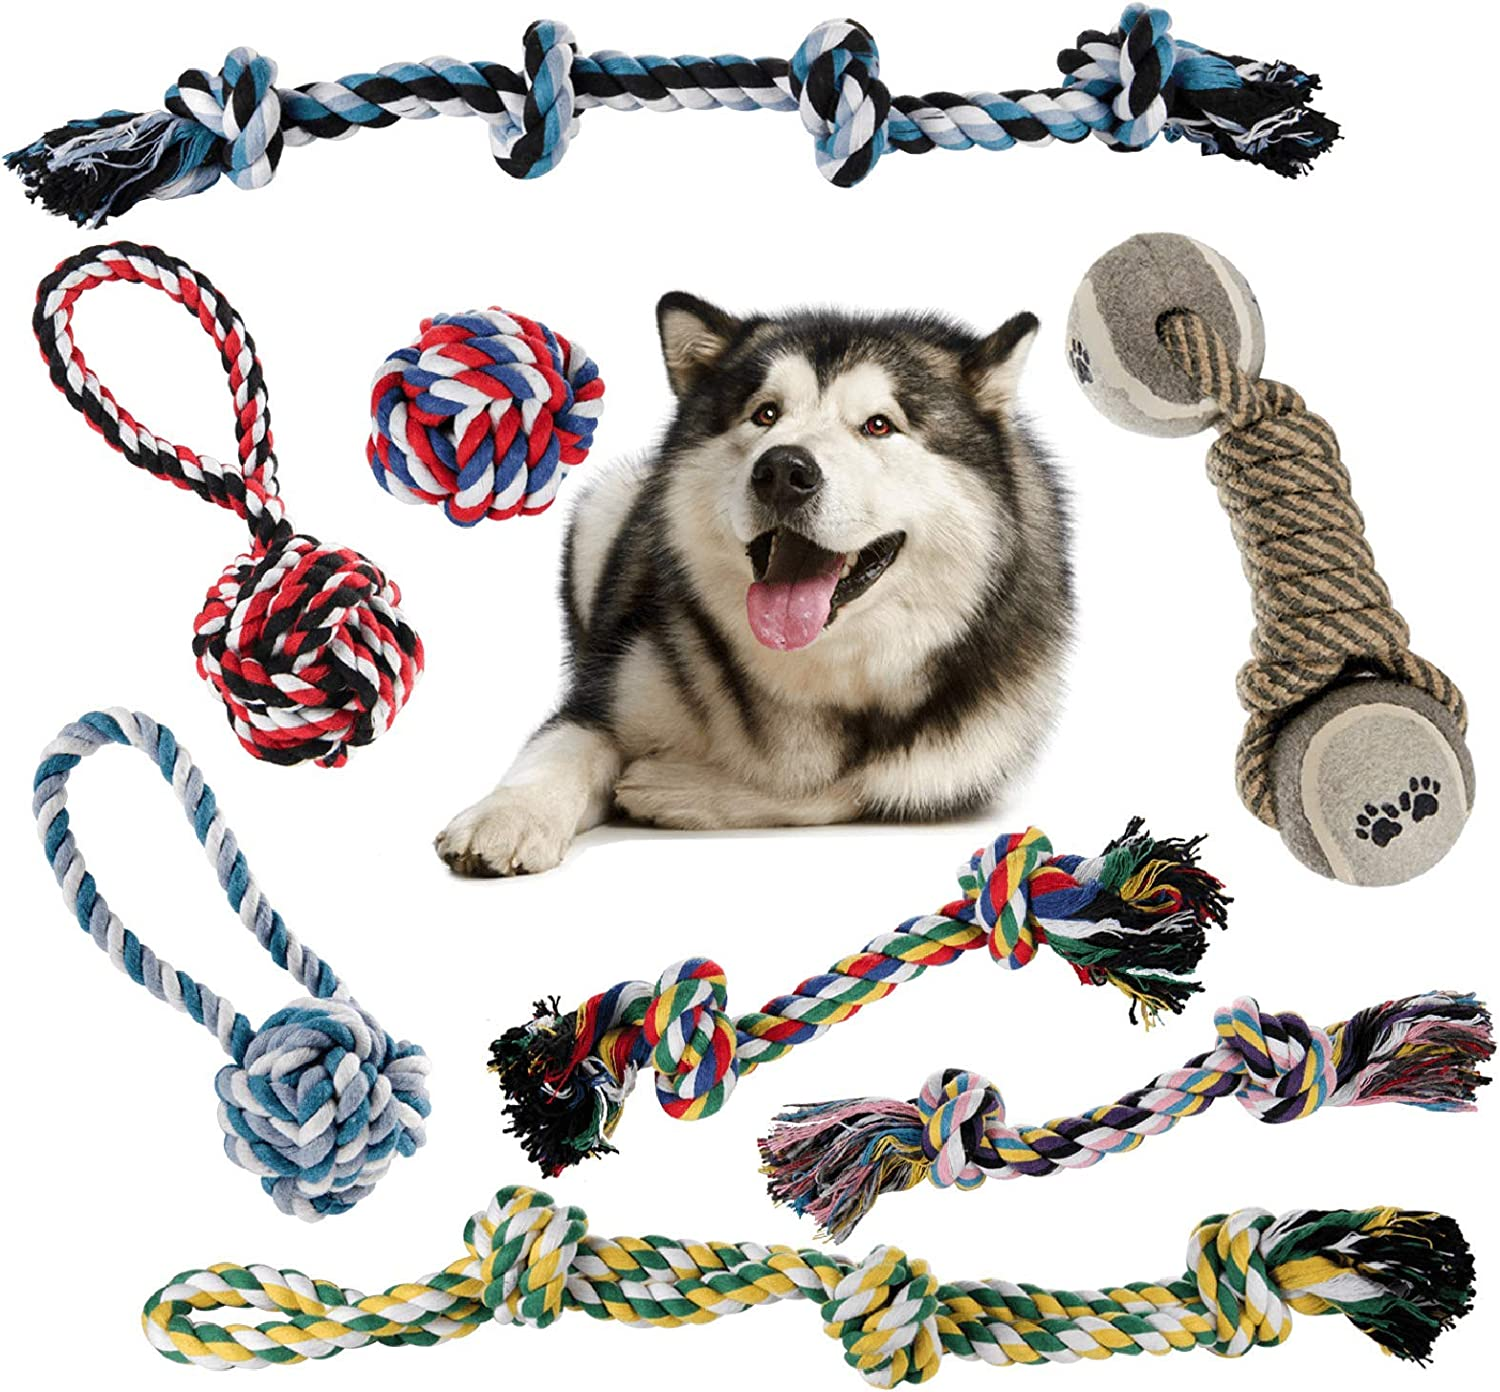 ZOUTOG Puppy Chew Toys Set of Reservation 8 for Ch Rope Dog gift Aggressive